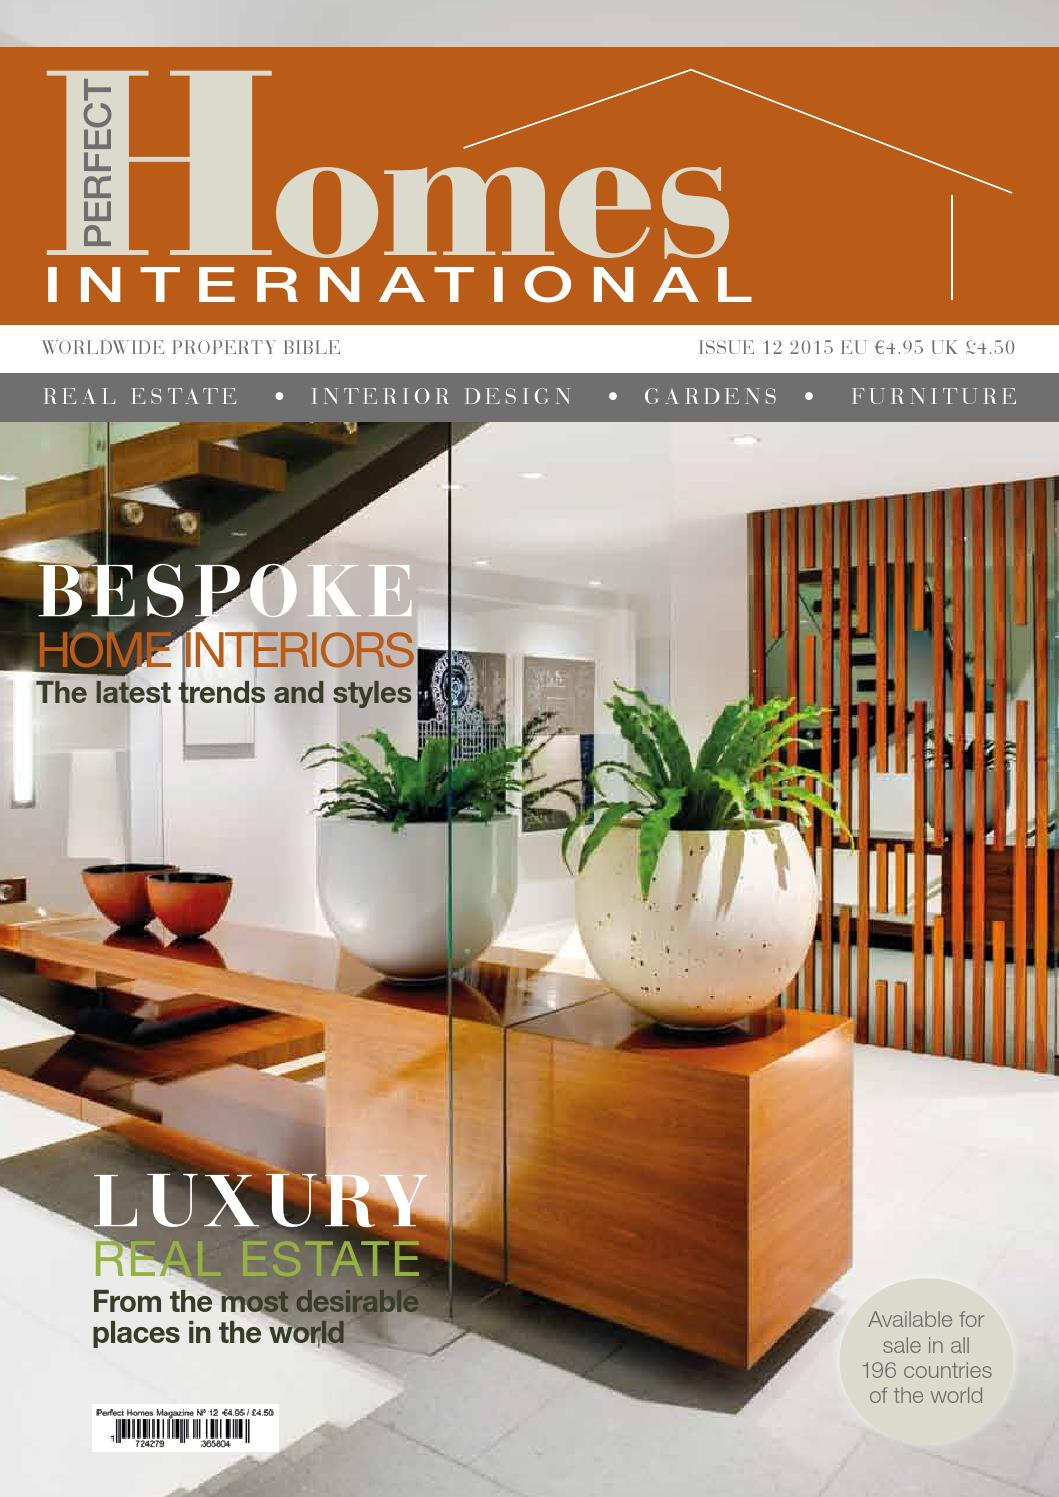 PERFECT HOMES INTERNATIONAL MAGAZINE By Simply Media Group Issuu - International home interiors